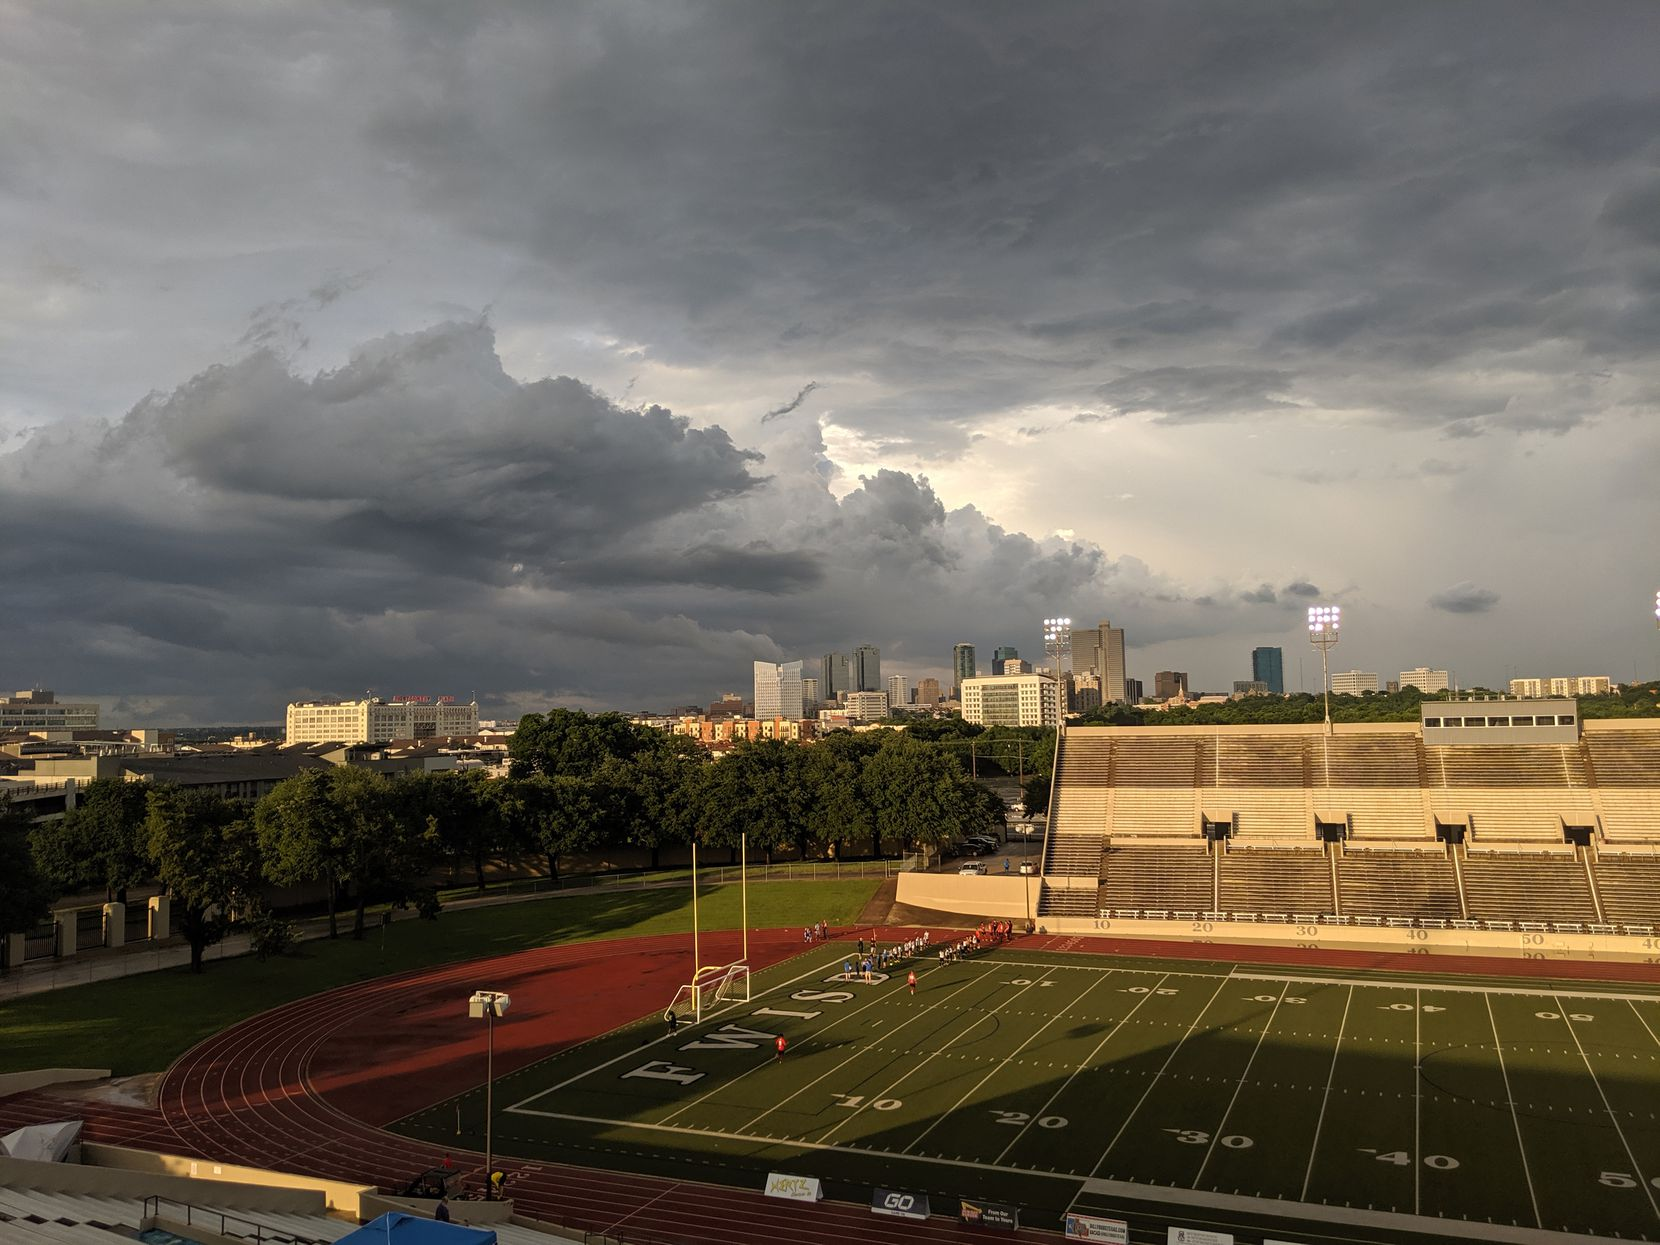 A brief moment of sunshine as storm clouds loom over the city prior to the Chisholm Trail Clásico between Fort Worth Vaqueros and Denton Diablos at Farrington Field in Fort Worth, Texas. (6-1-19)